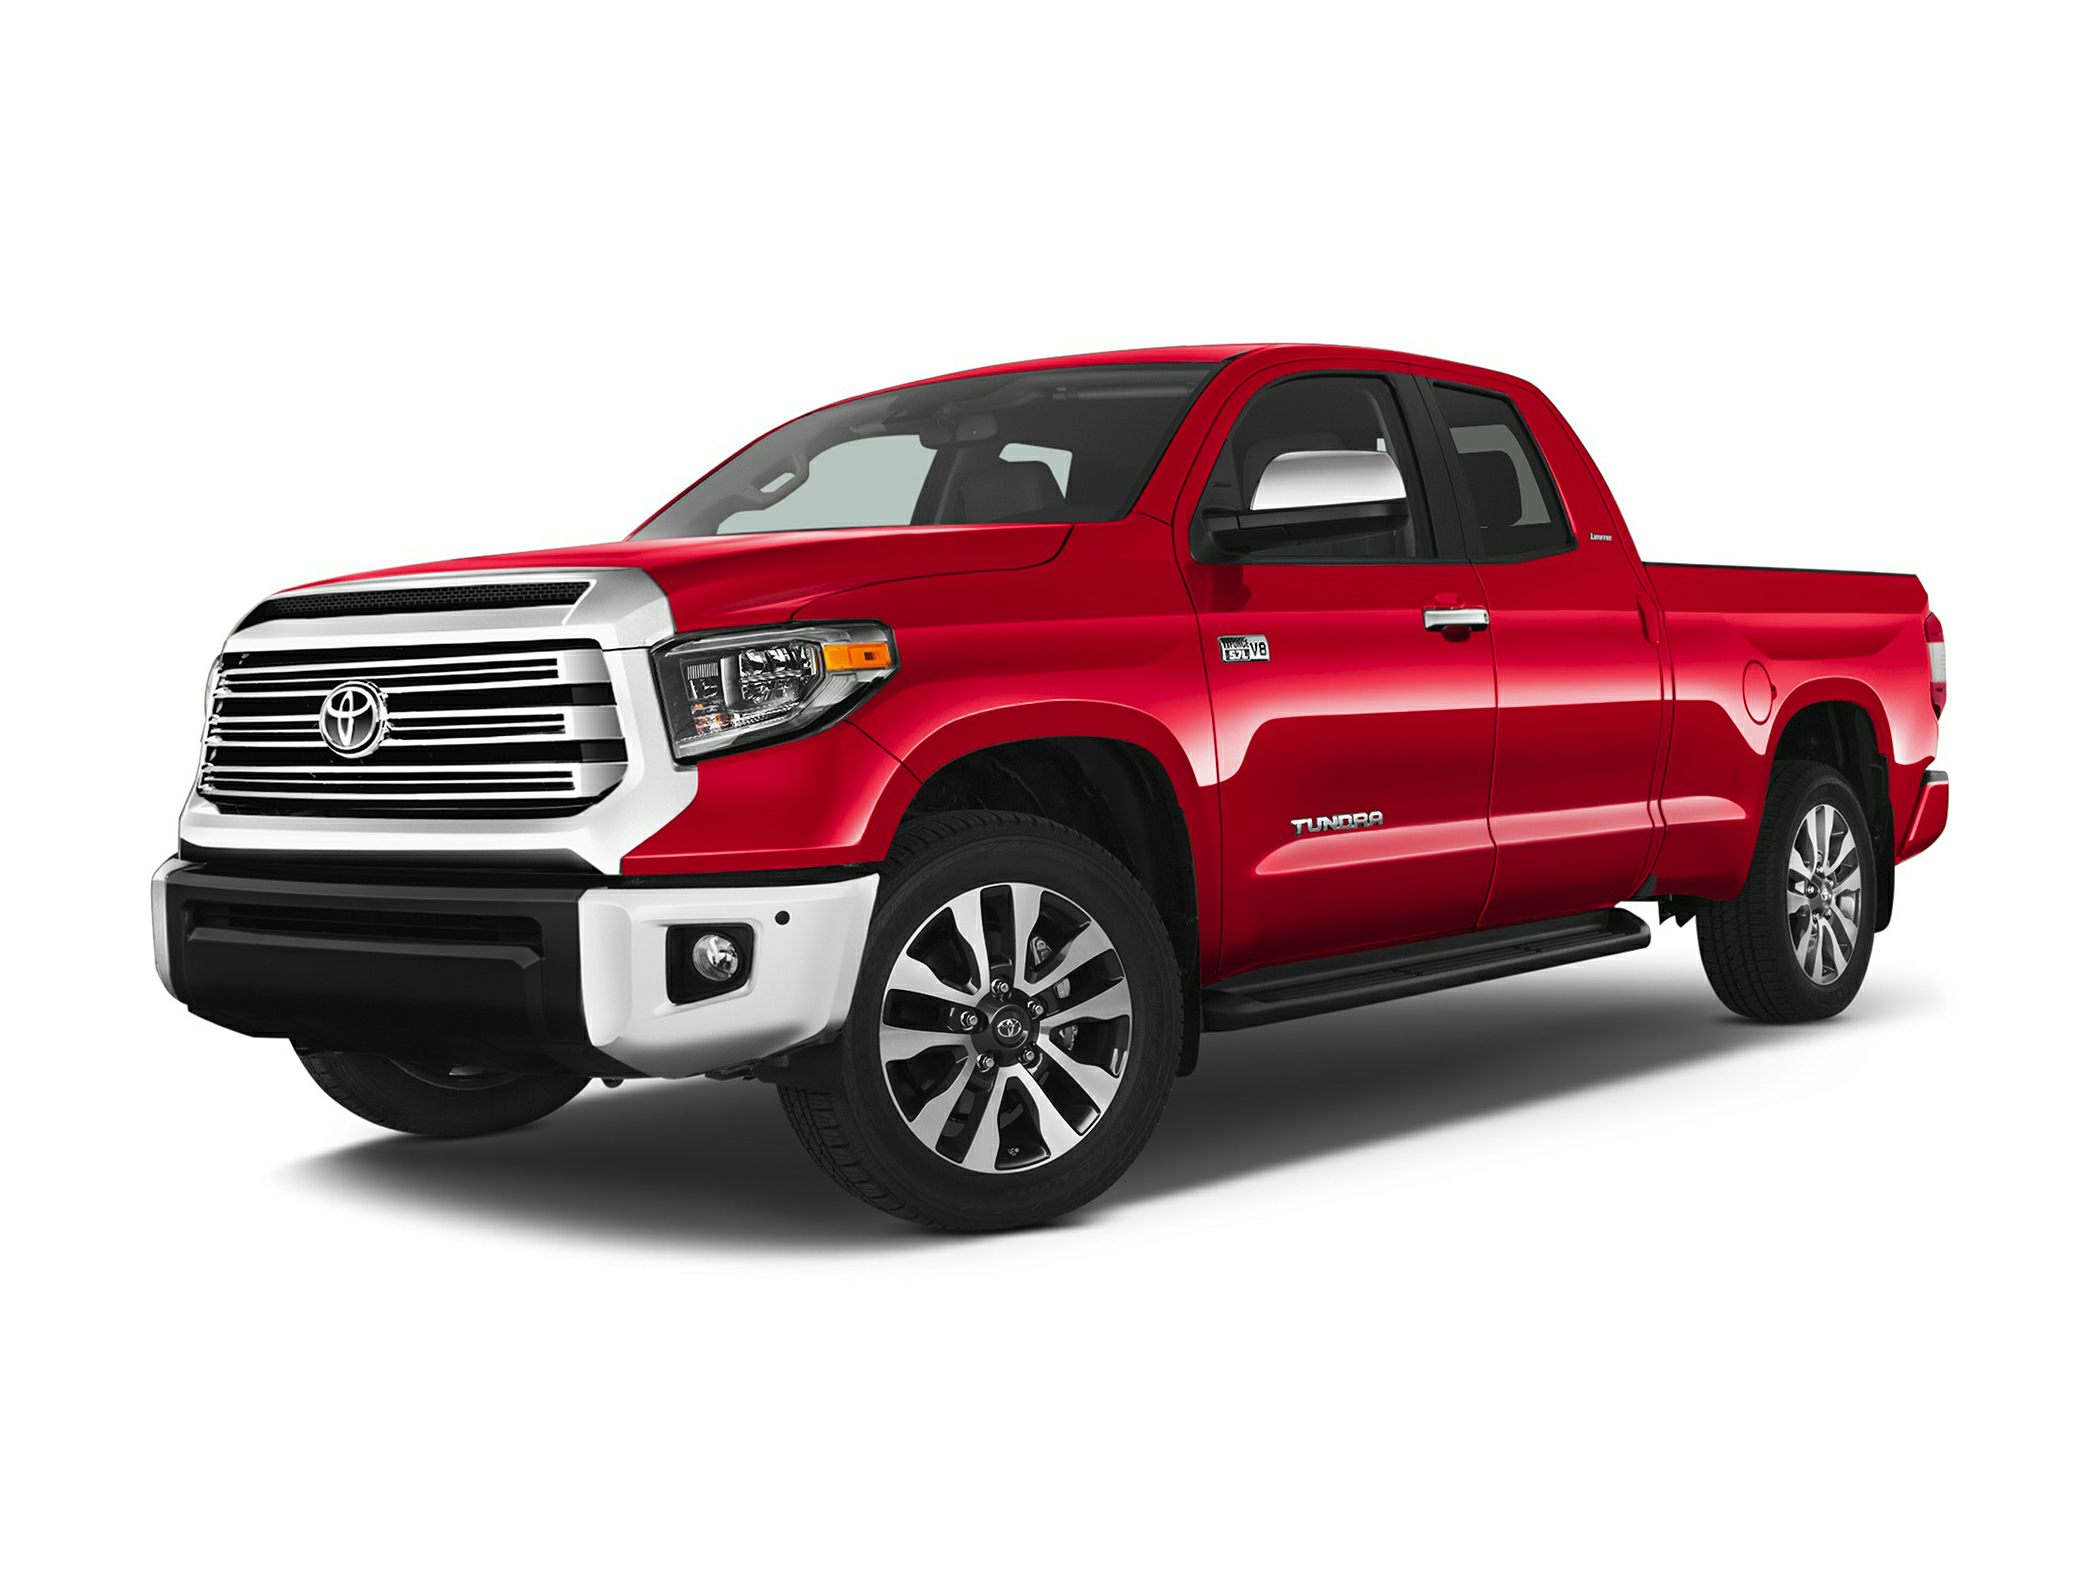 2020 Toyota Tundra Trd Pro 5 7l V8 4x4 Double Cab 6 6 Ft Box 145 7 In Wb Pricing And Options